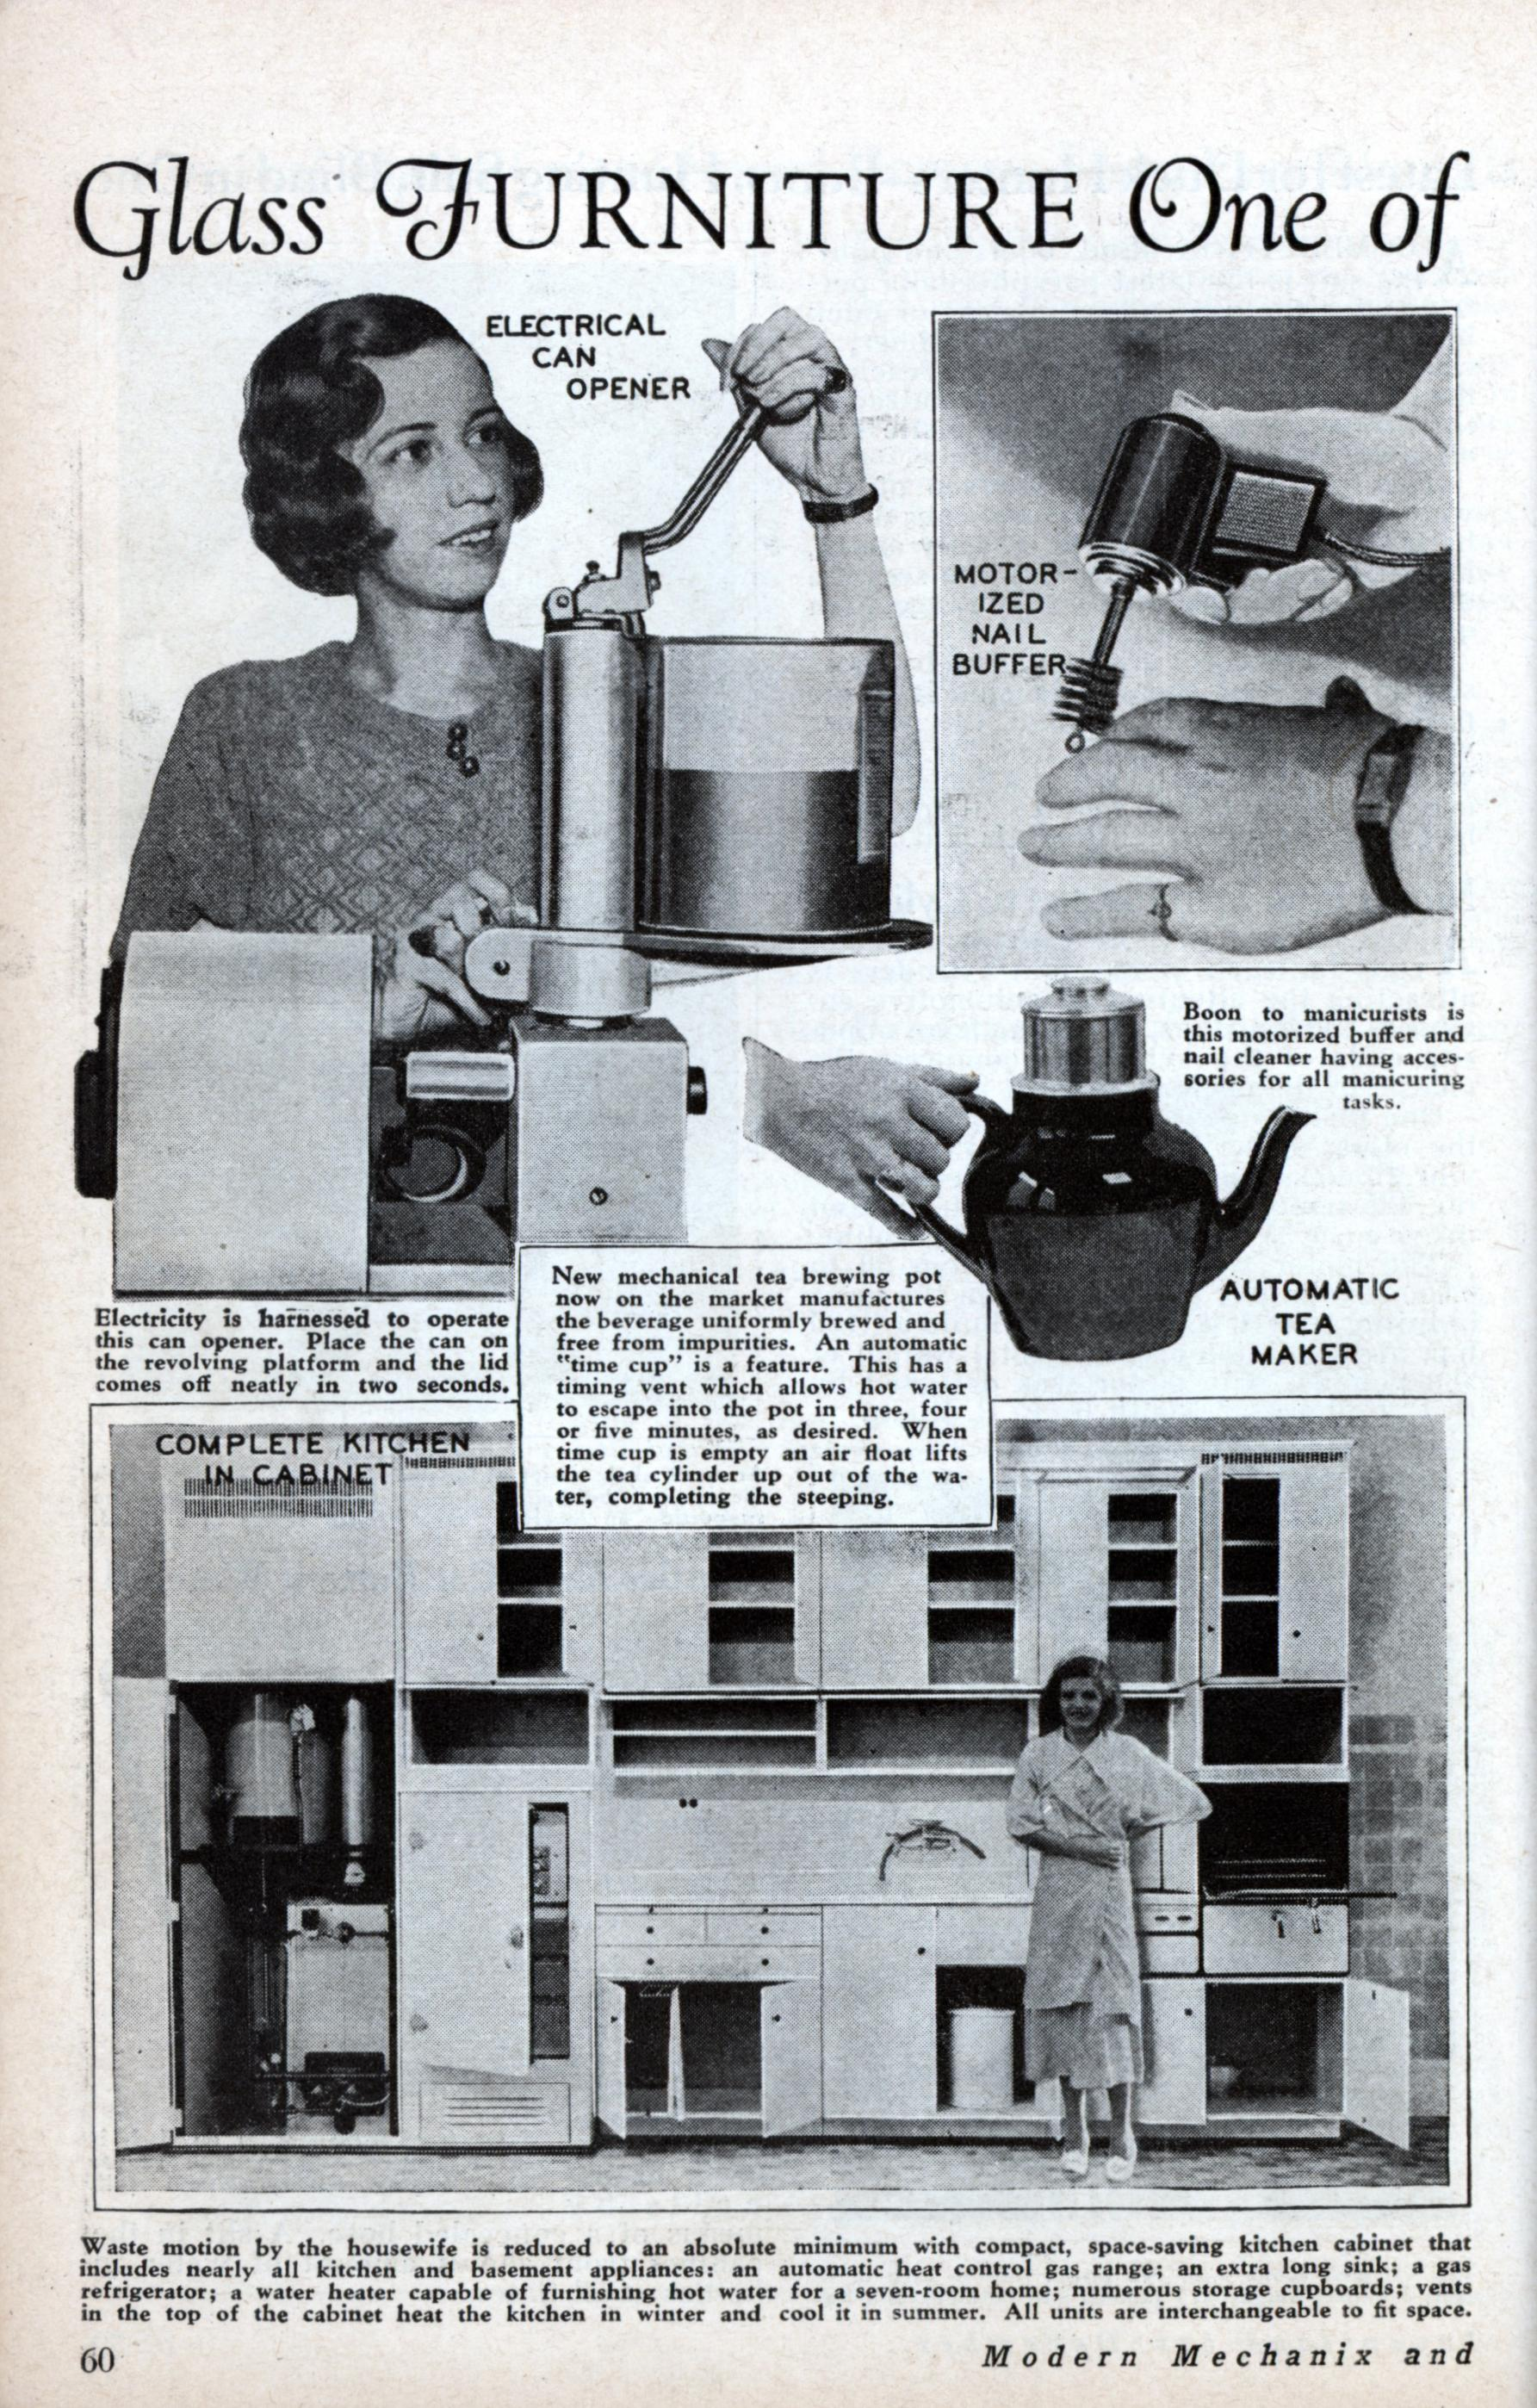 glass furniture one of new household appliances  dec 1933  glass furniture one of new household appliances   modern mechanix  rh   blog modernmechanix com